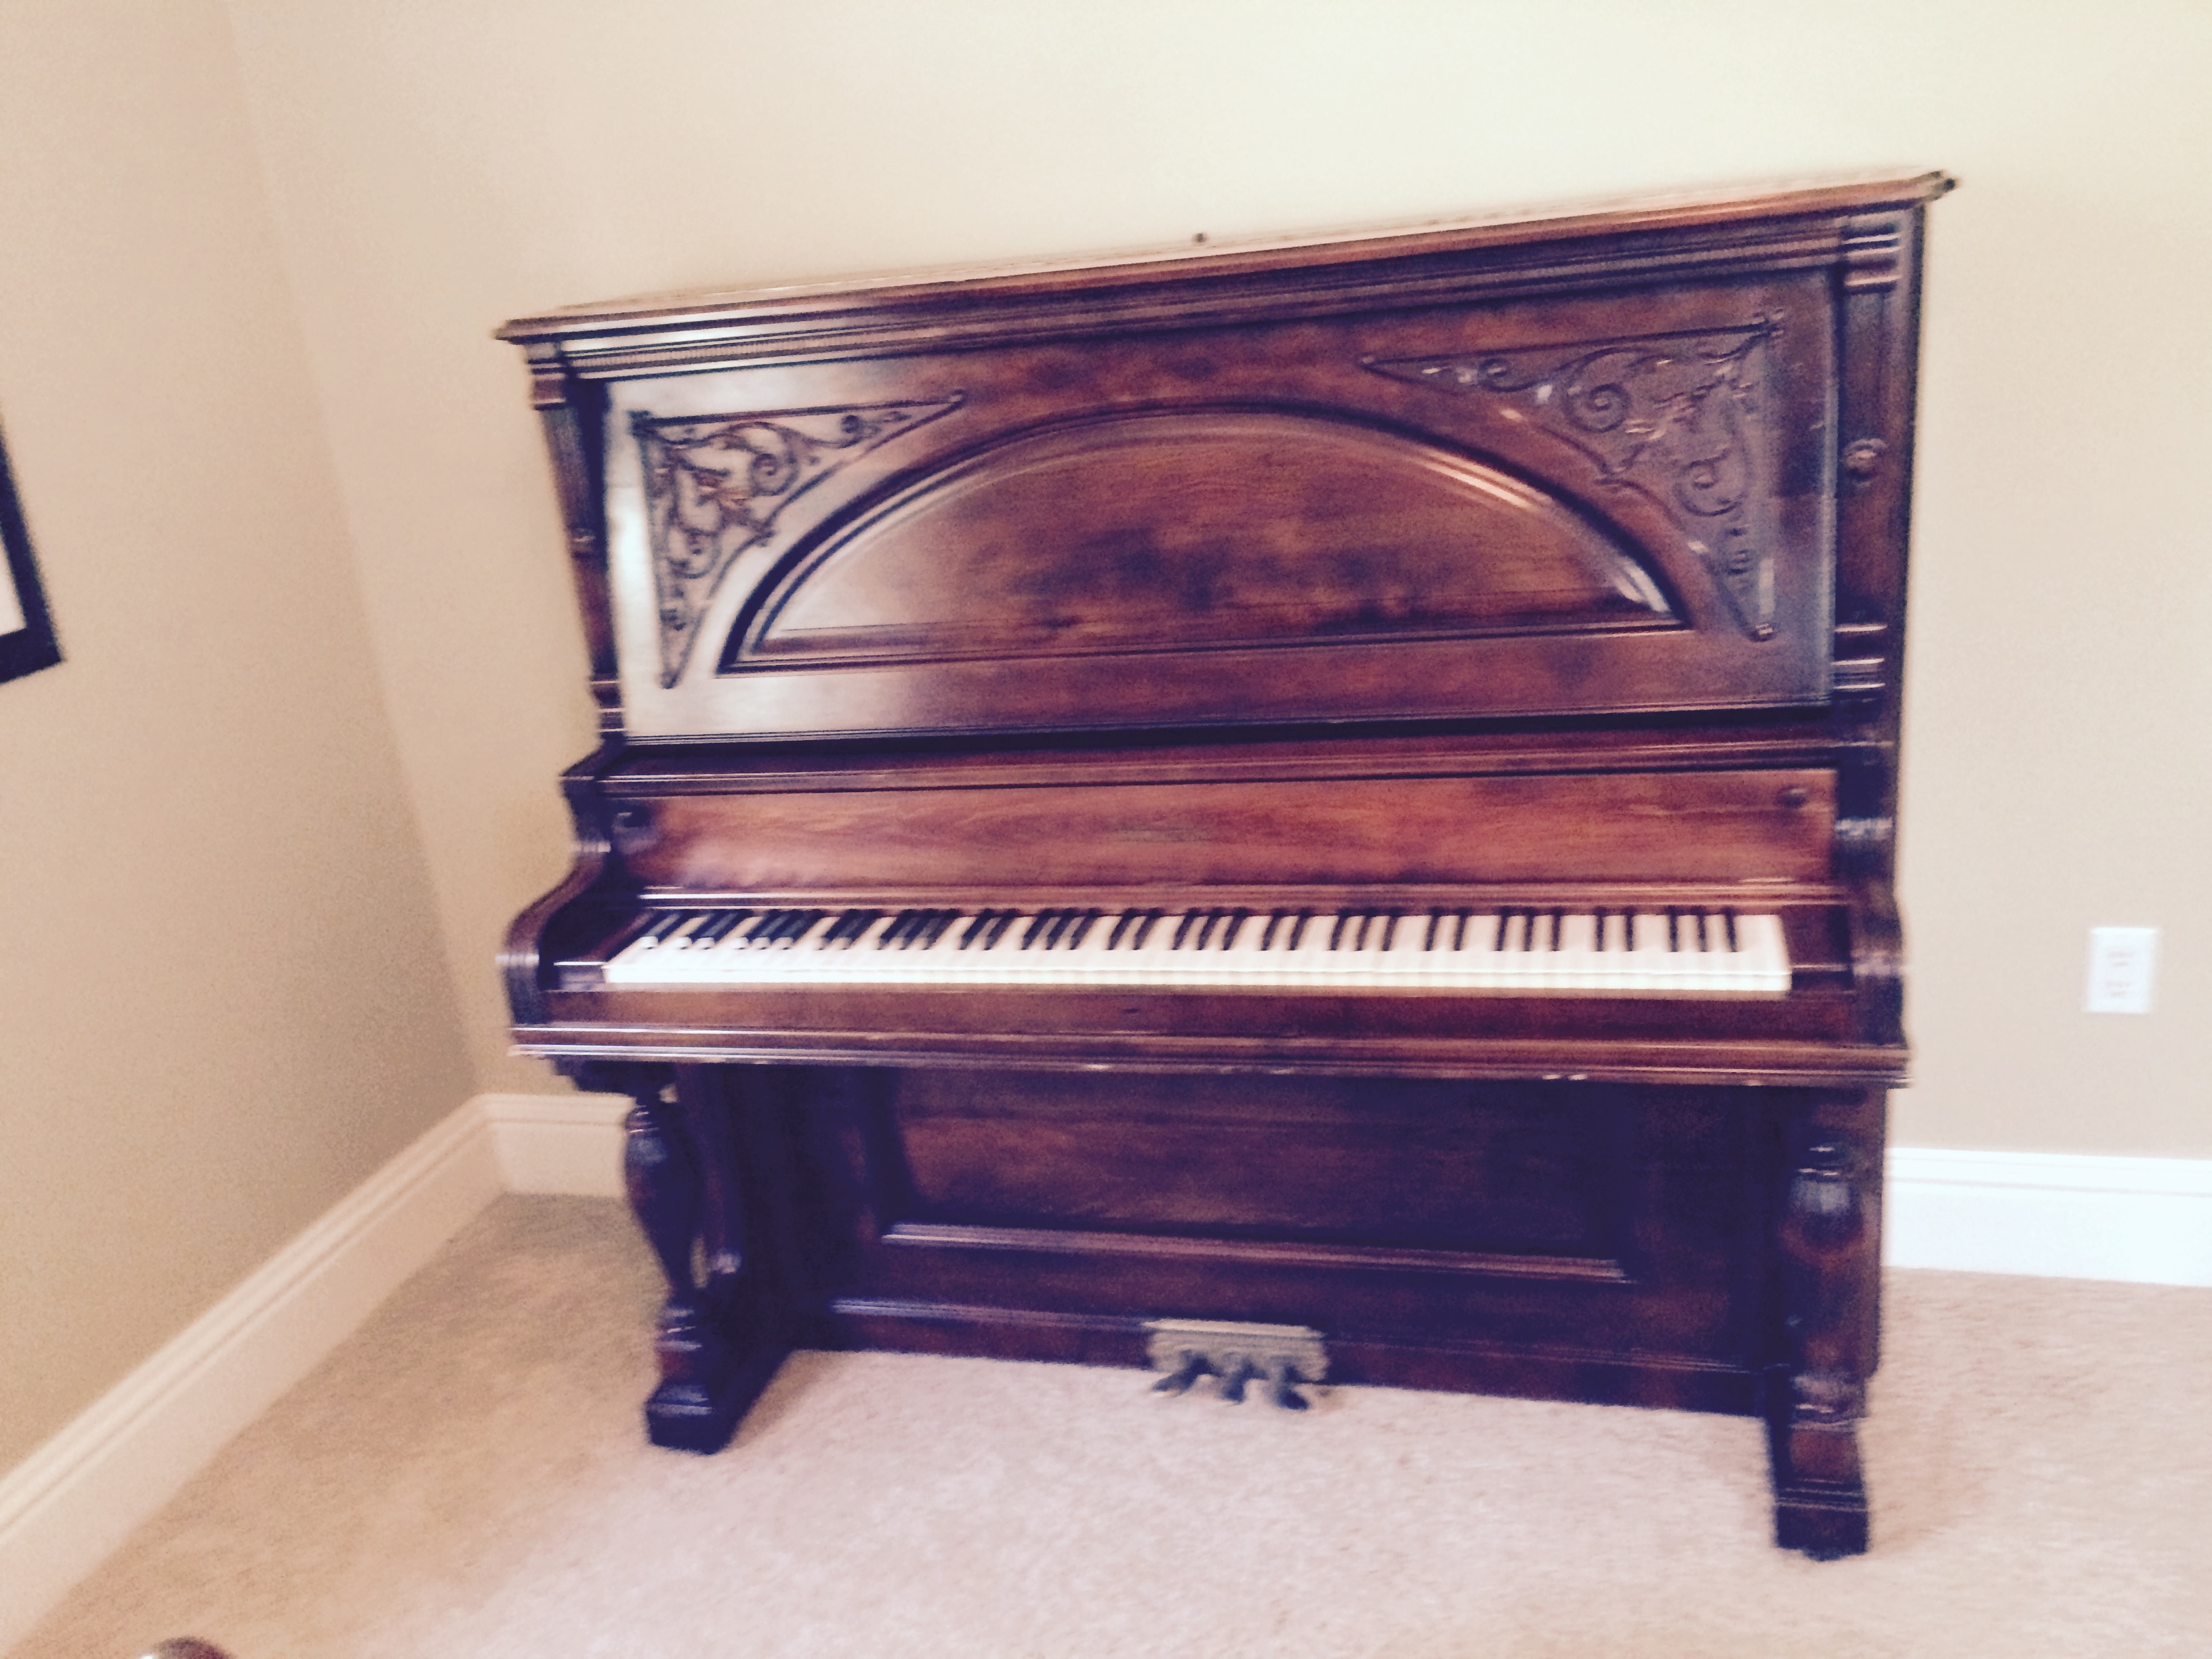 Hamilton Upright Cabinet Grand Piano | Roy Ratigan Piano Tuner